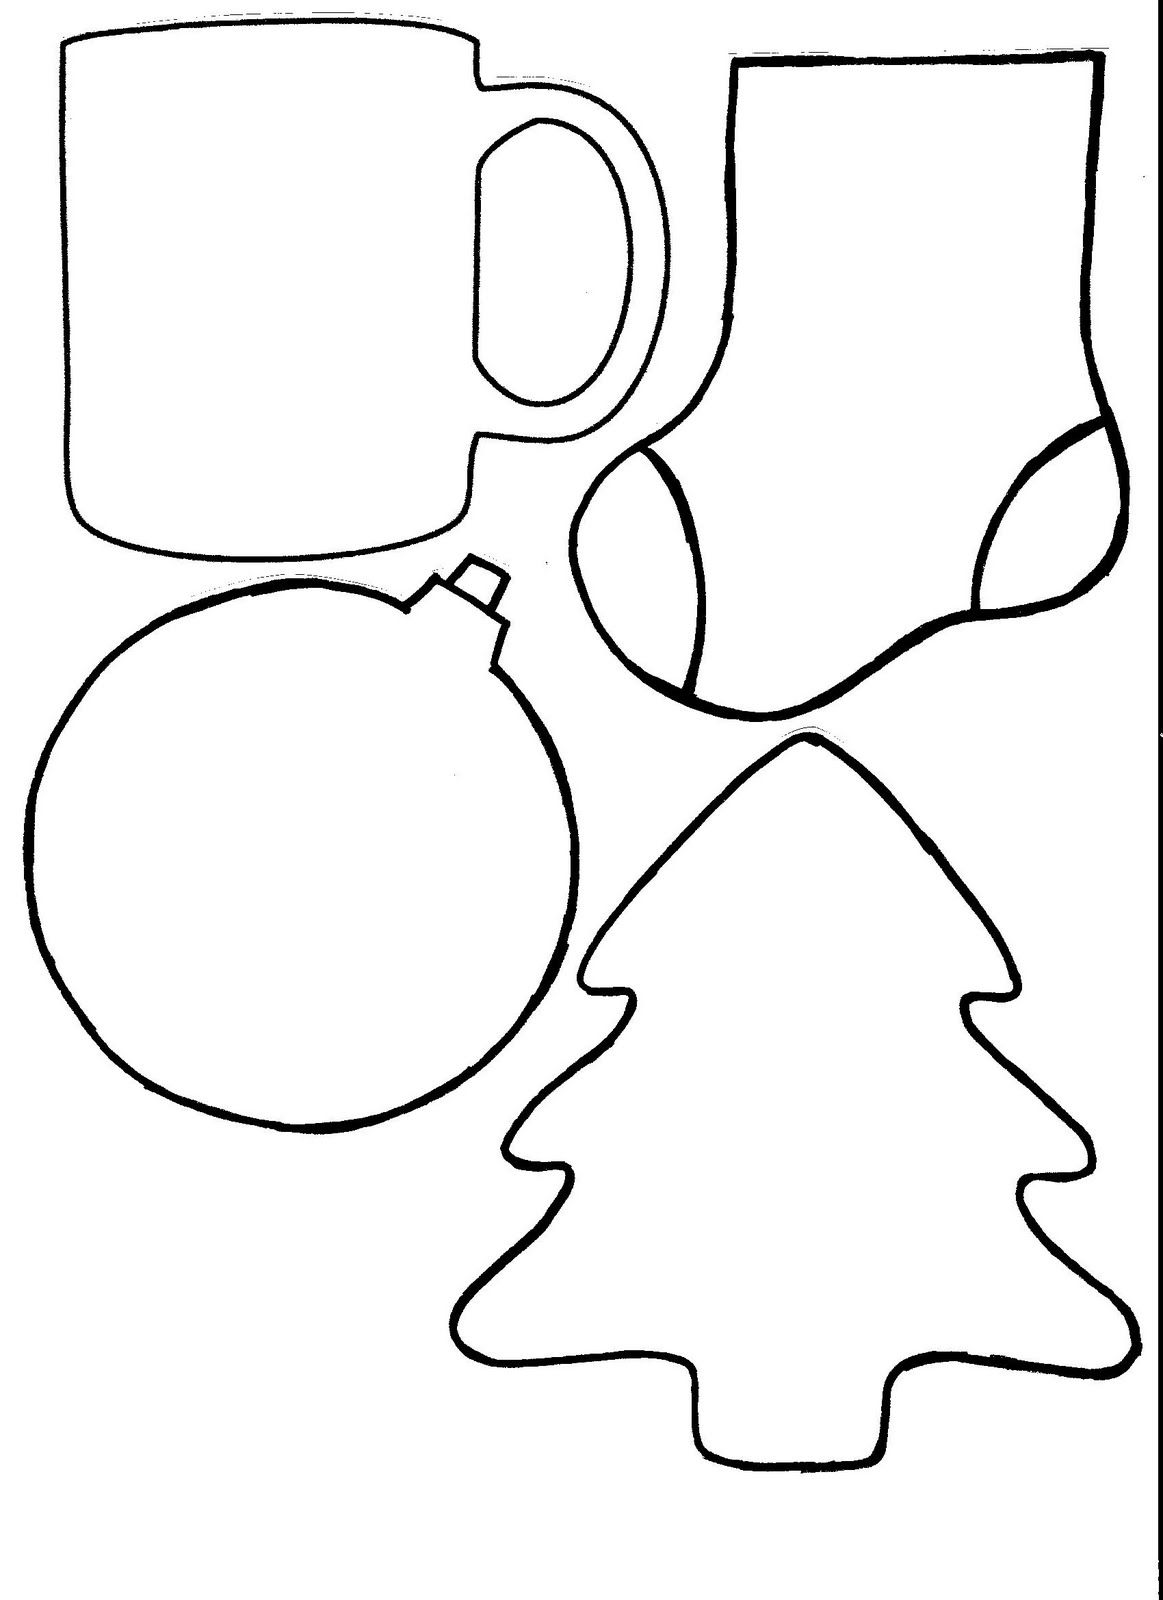 photo regarding Printable Ornament Templates identify printable ornament styles leaf and letter do-it-yourself: do it yourself